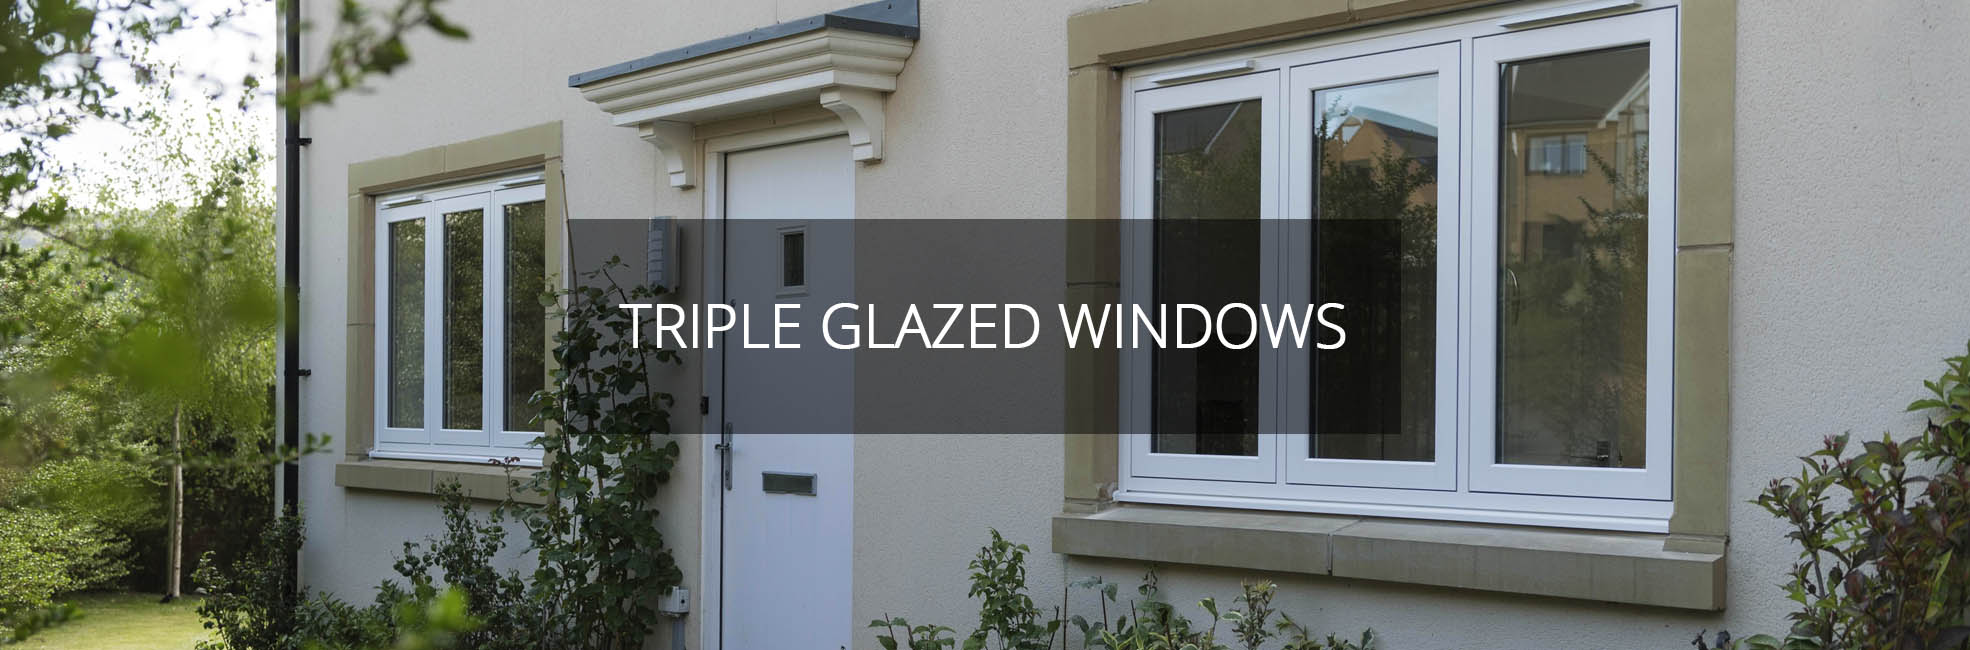 Triple Glazed Windows Northampton